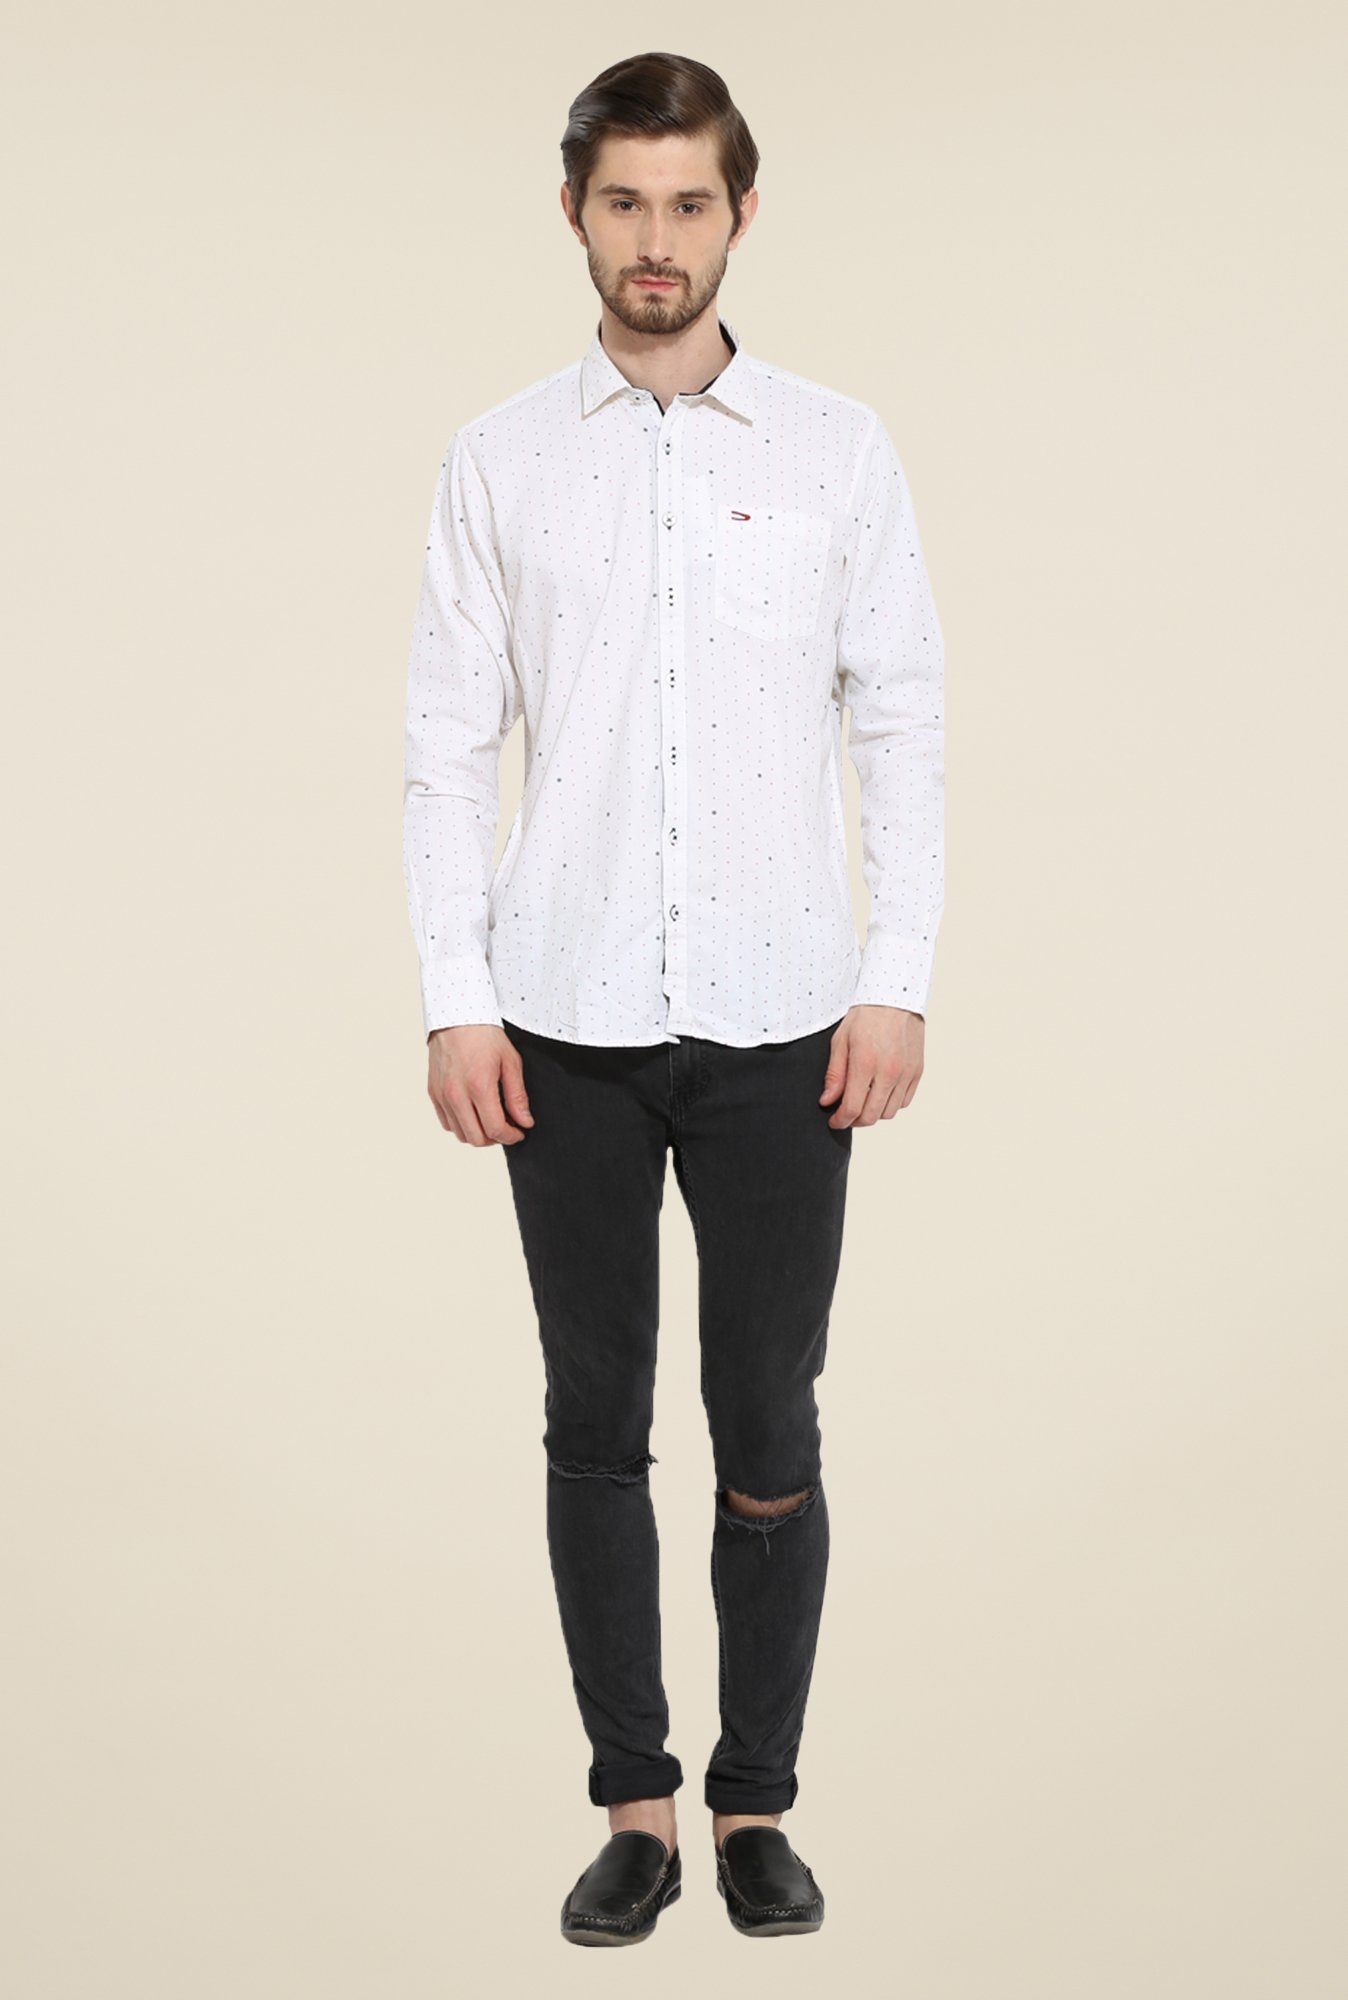 Duke Stardust White Printed Shirt